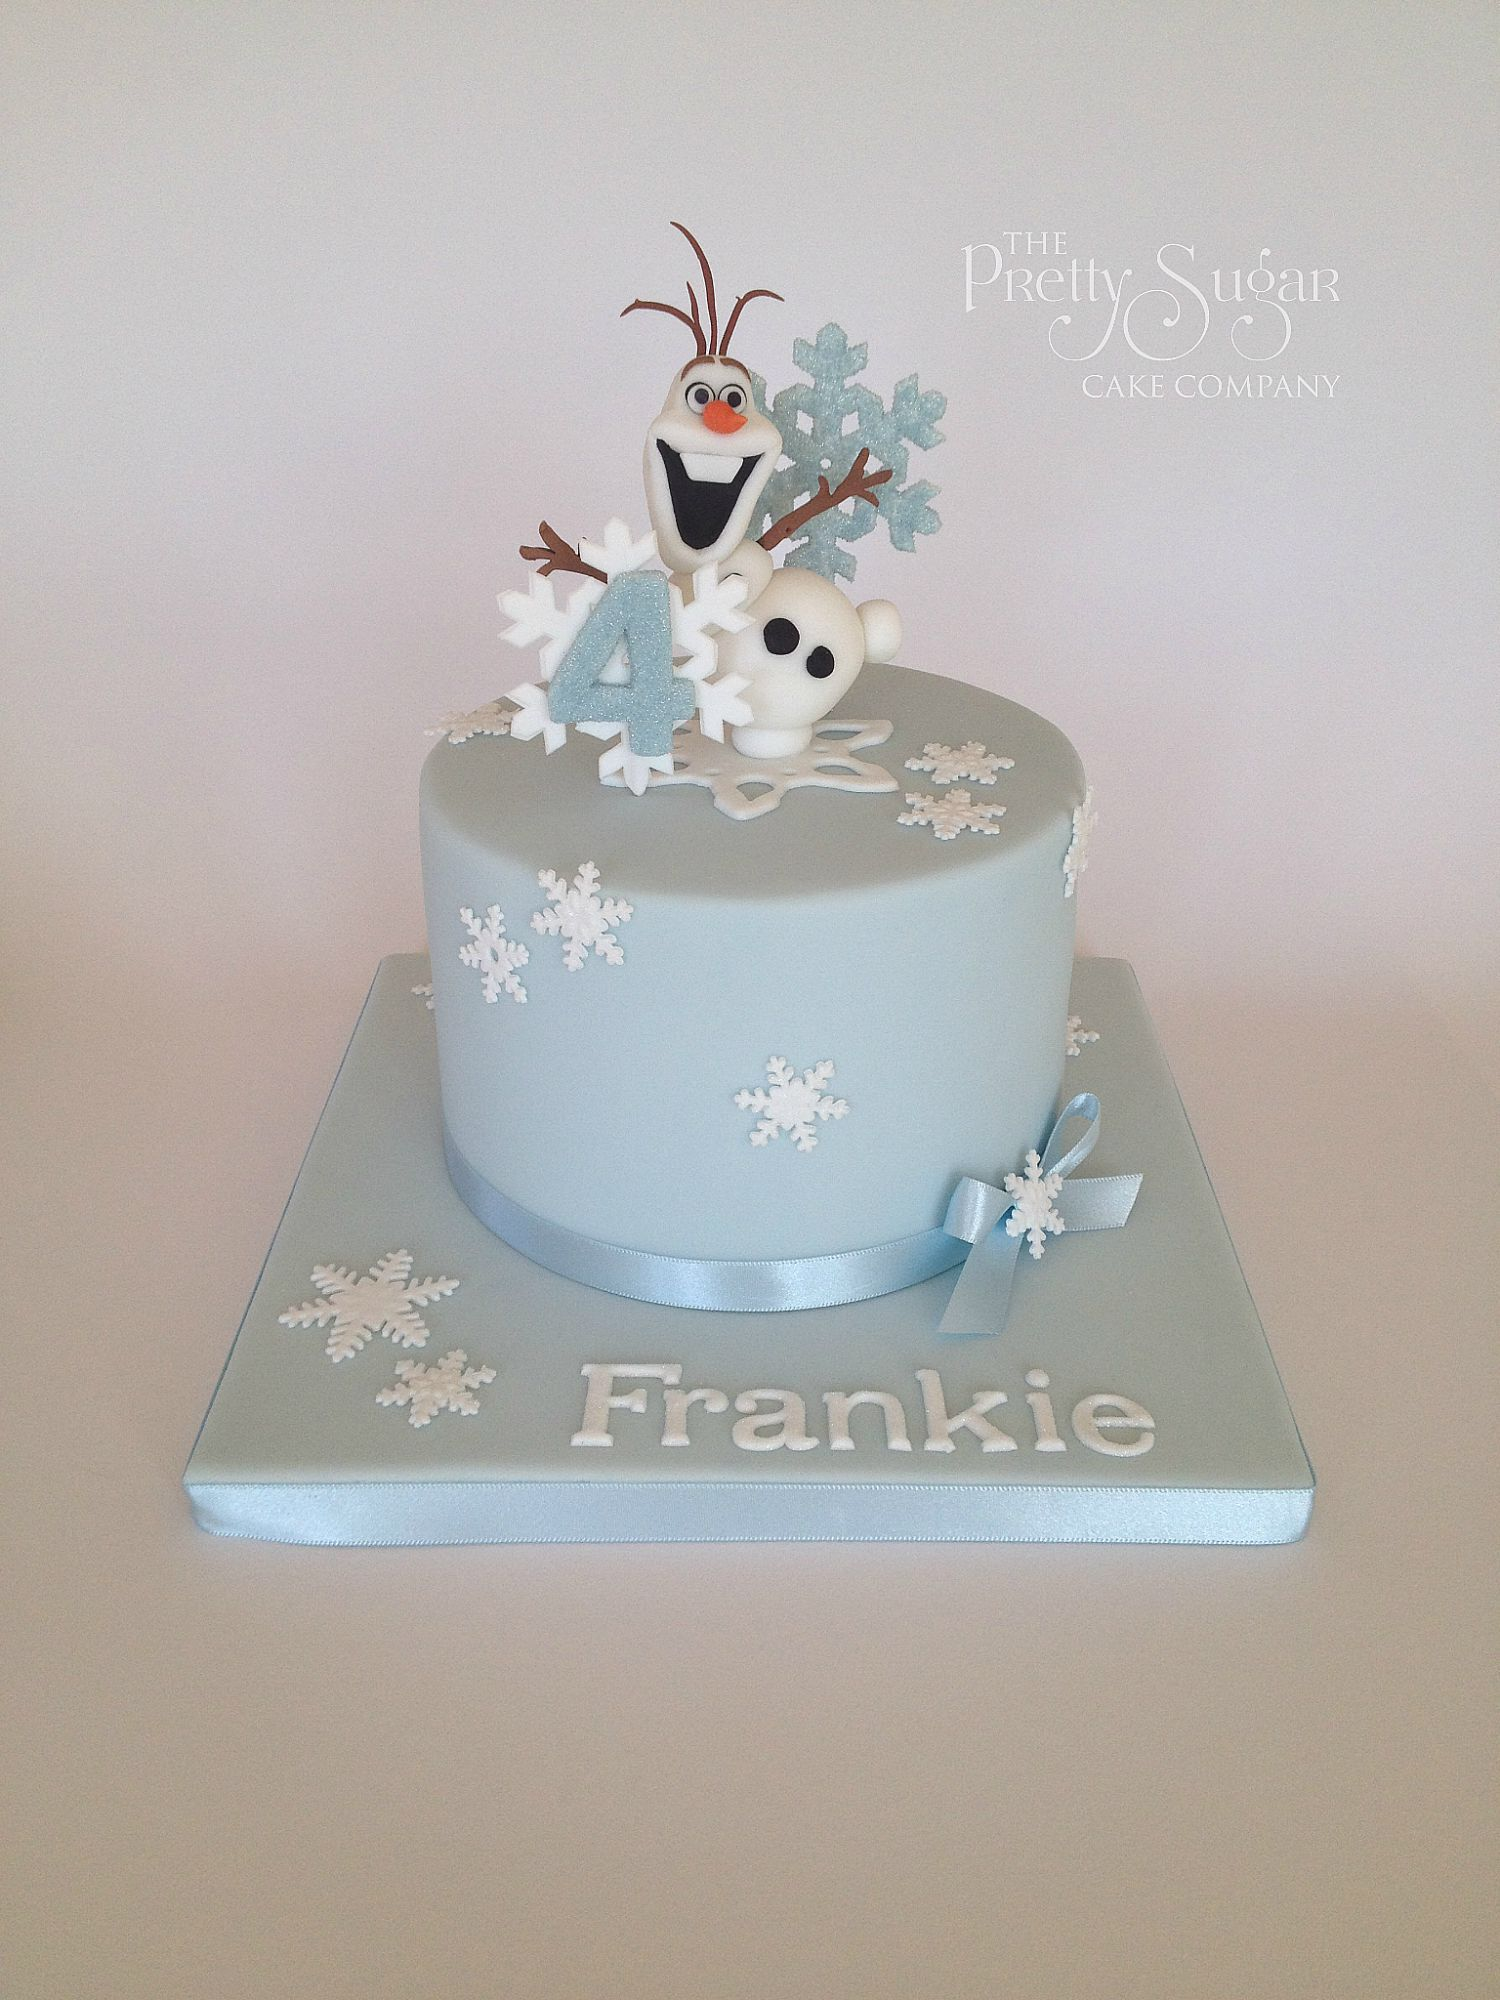 Astonishing Frozen Theme Birthday Cake With Olaf And Snowflakes Topper Funny Birthday Cards Online Alyptdamsfinfo